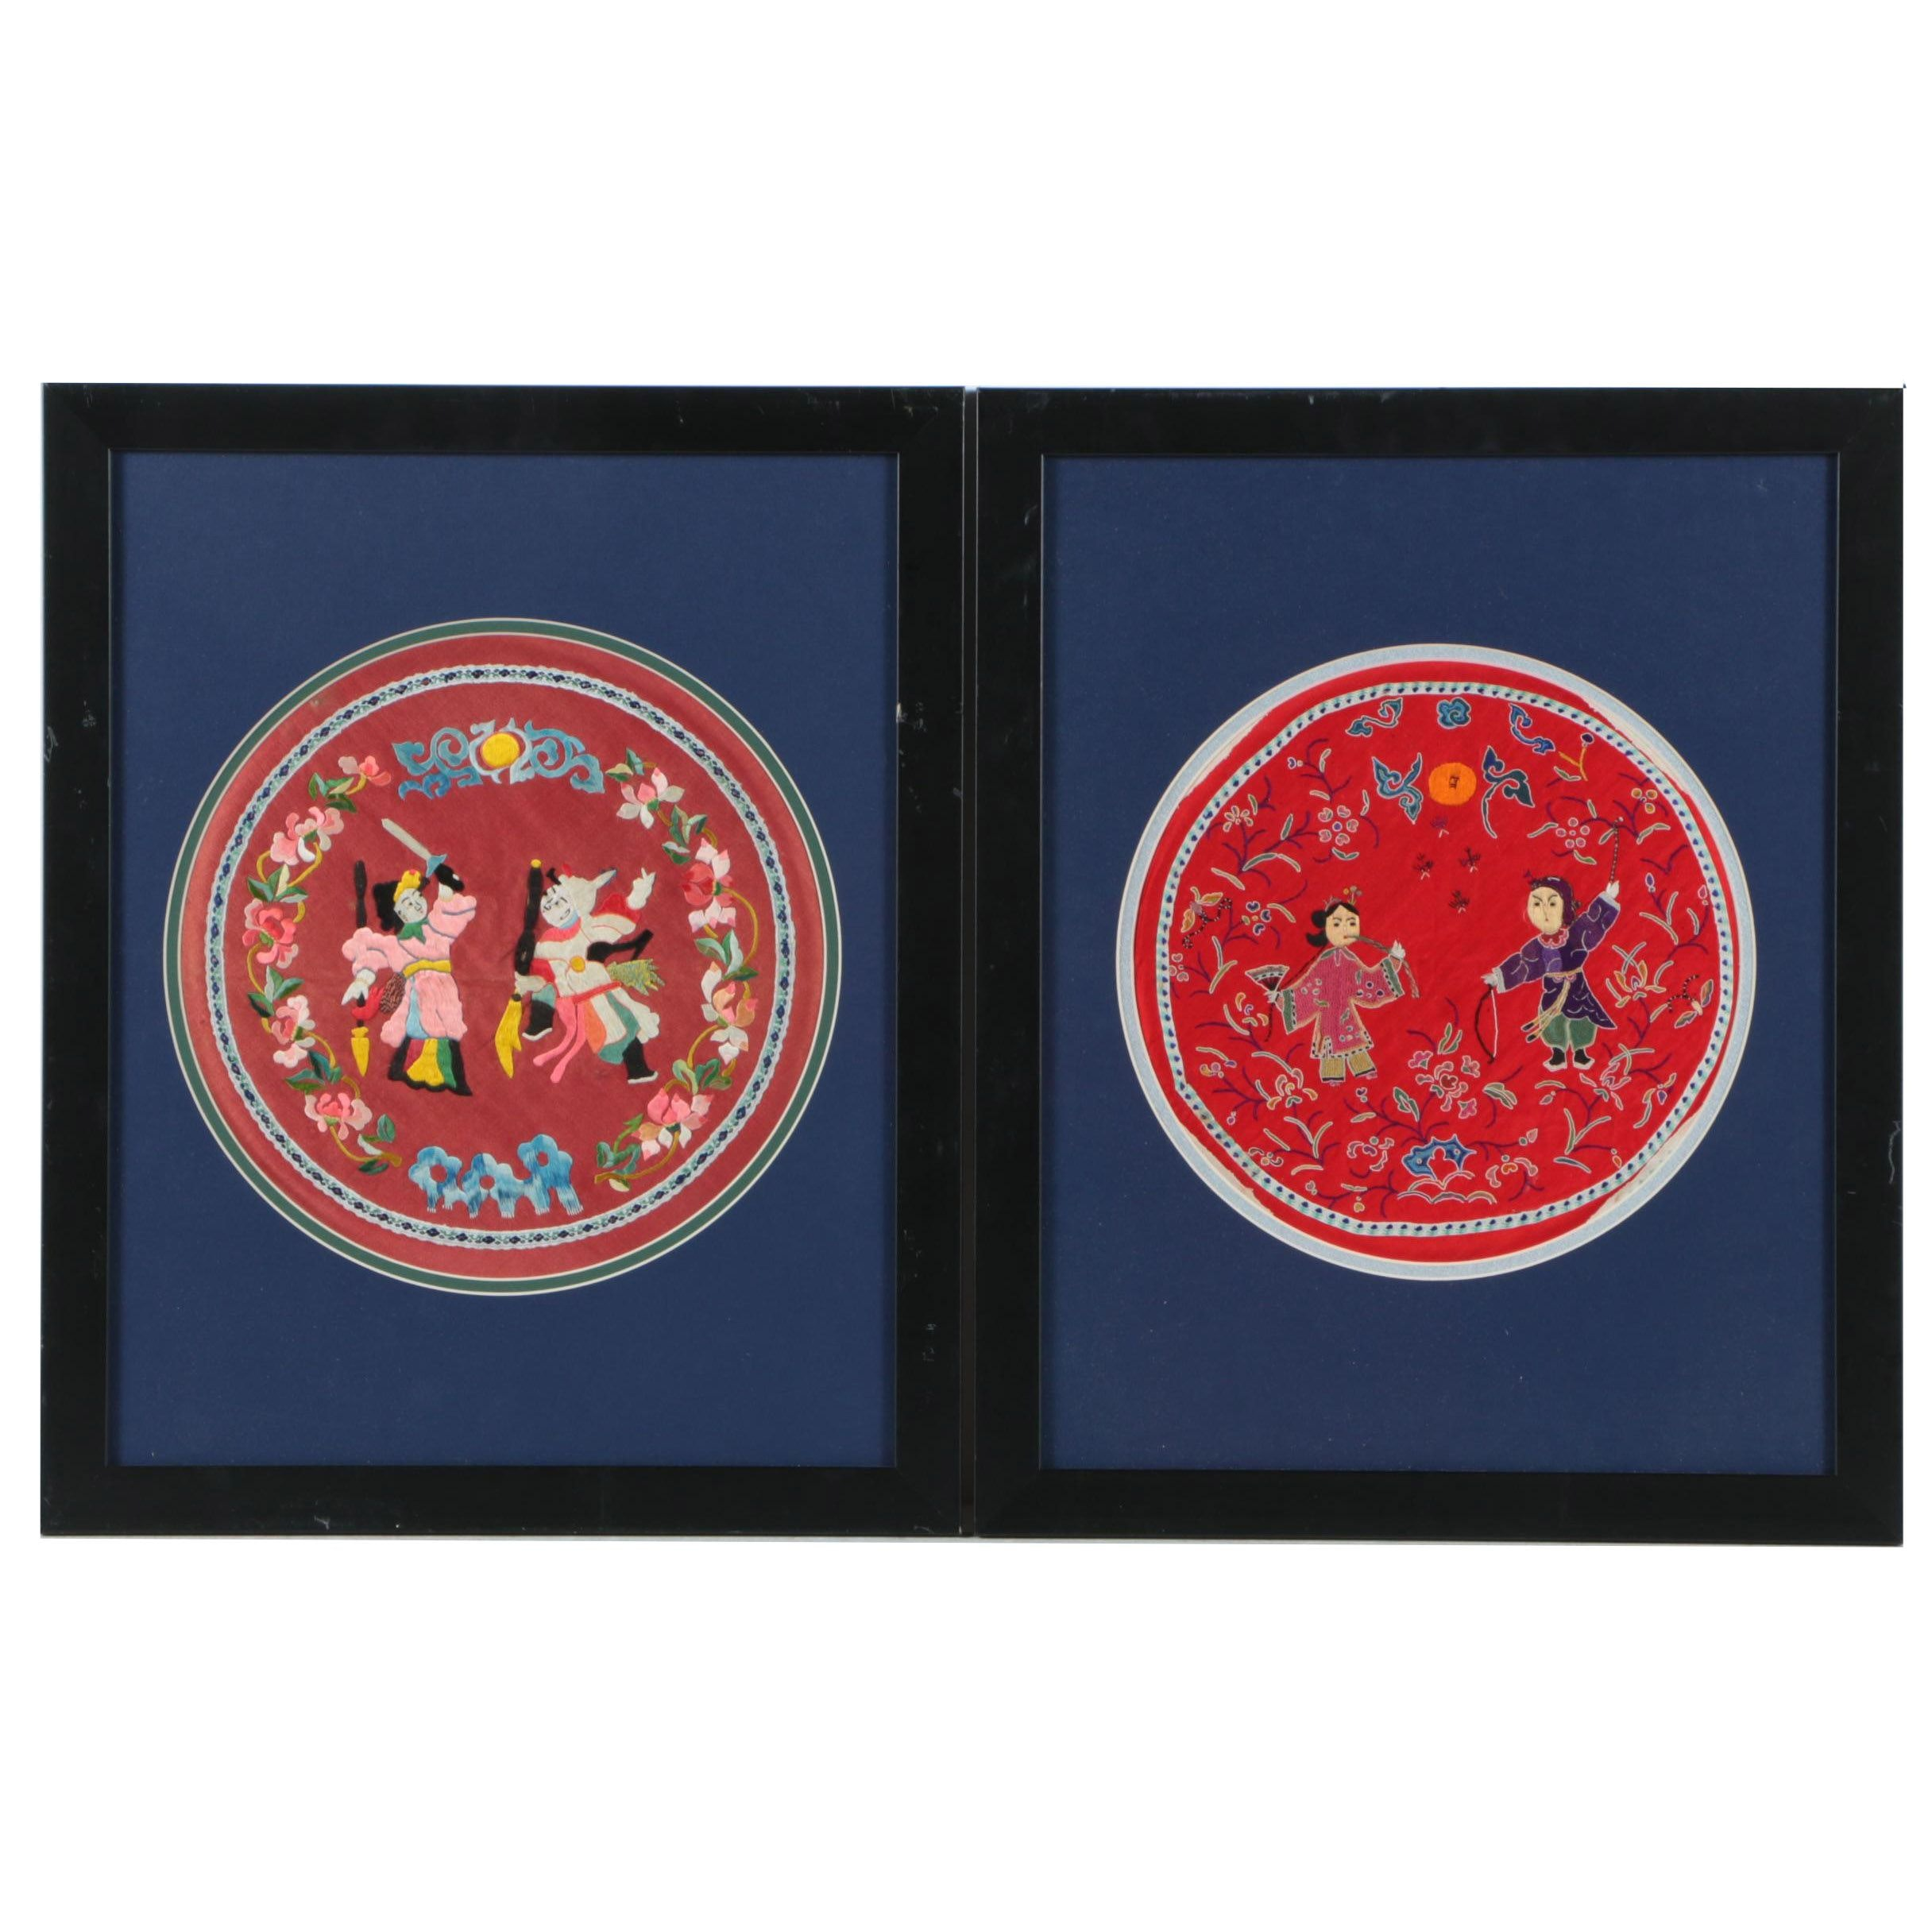 Pair of Antique Chinese Circular Embroideries